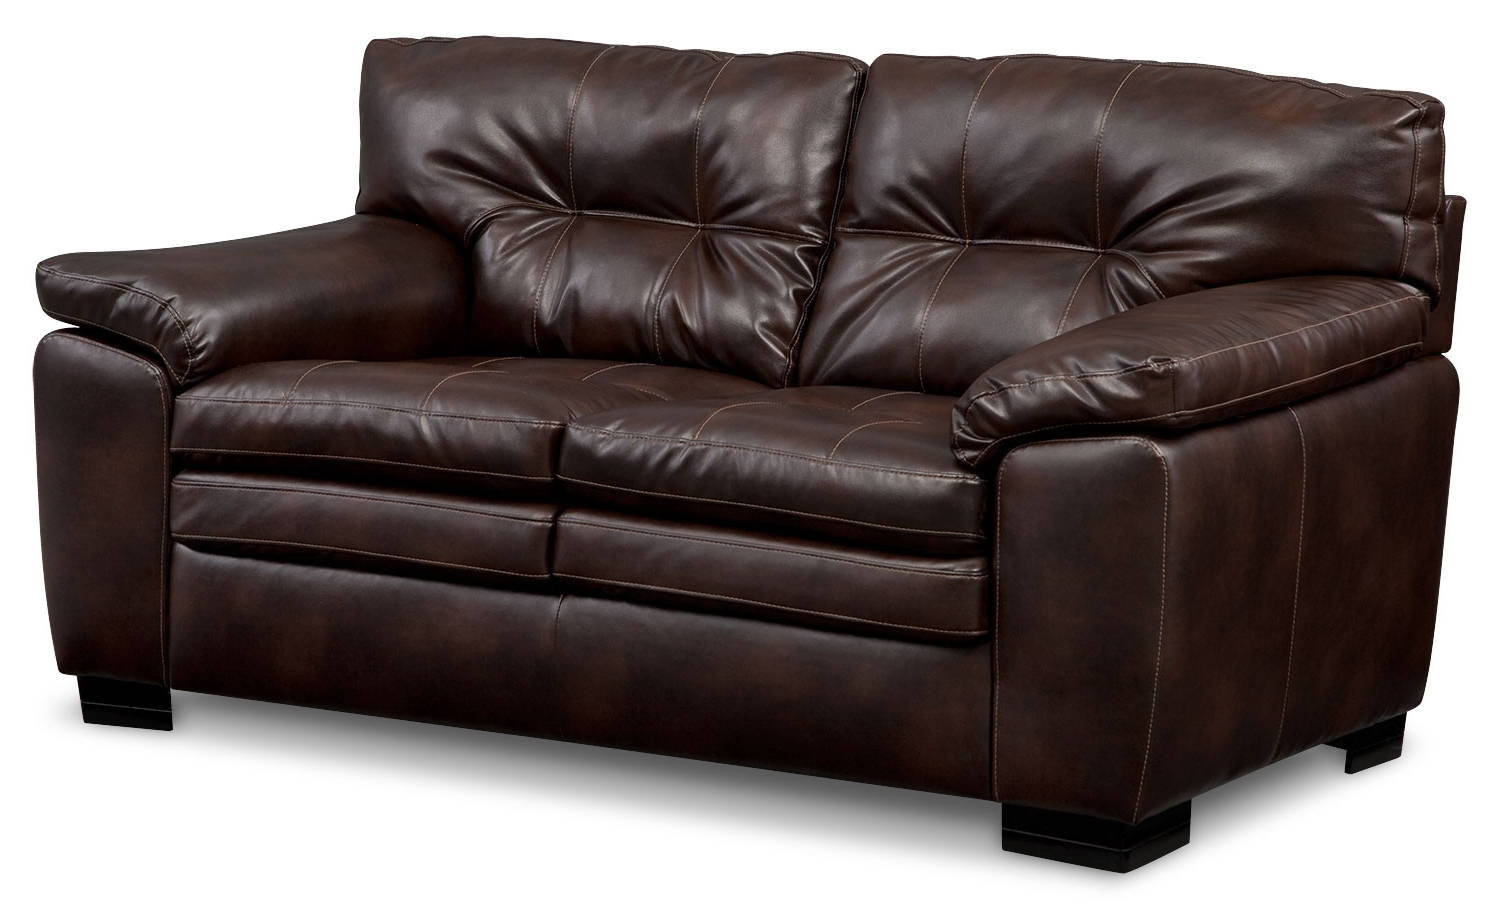 Sectional Sofas Under 500 In Latest Sofa : Beige Sofa Set Beige Fabric Classic Living Room Sofa (View 6 of 15)